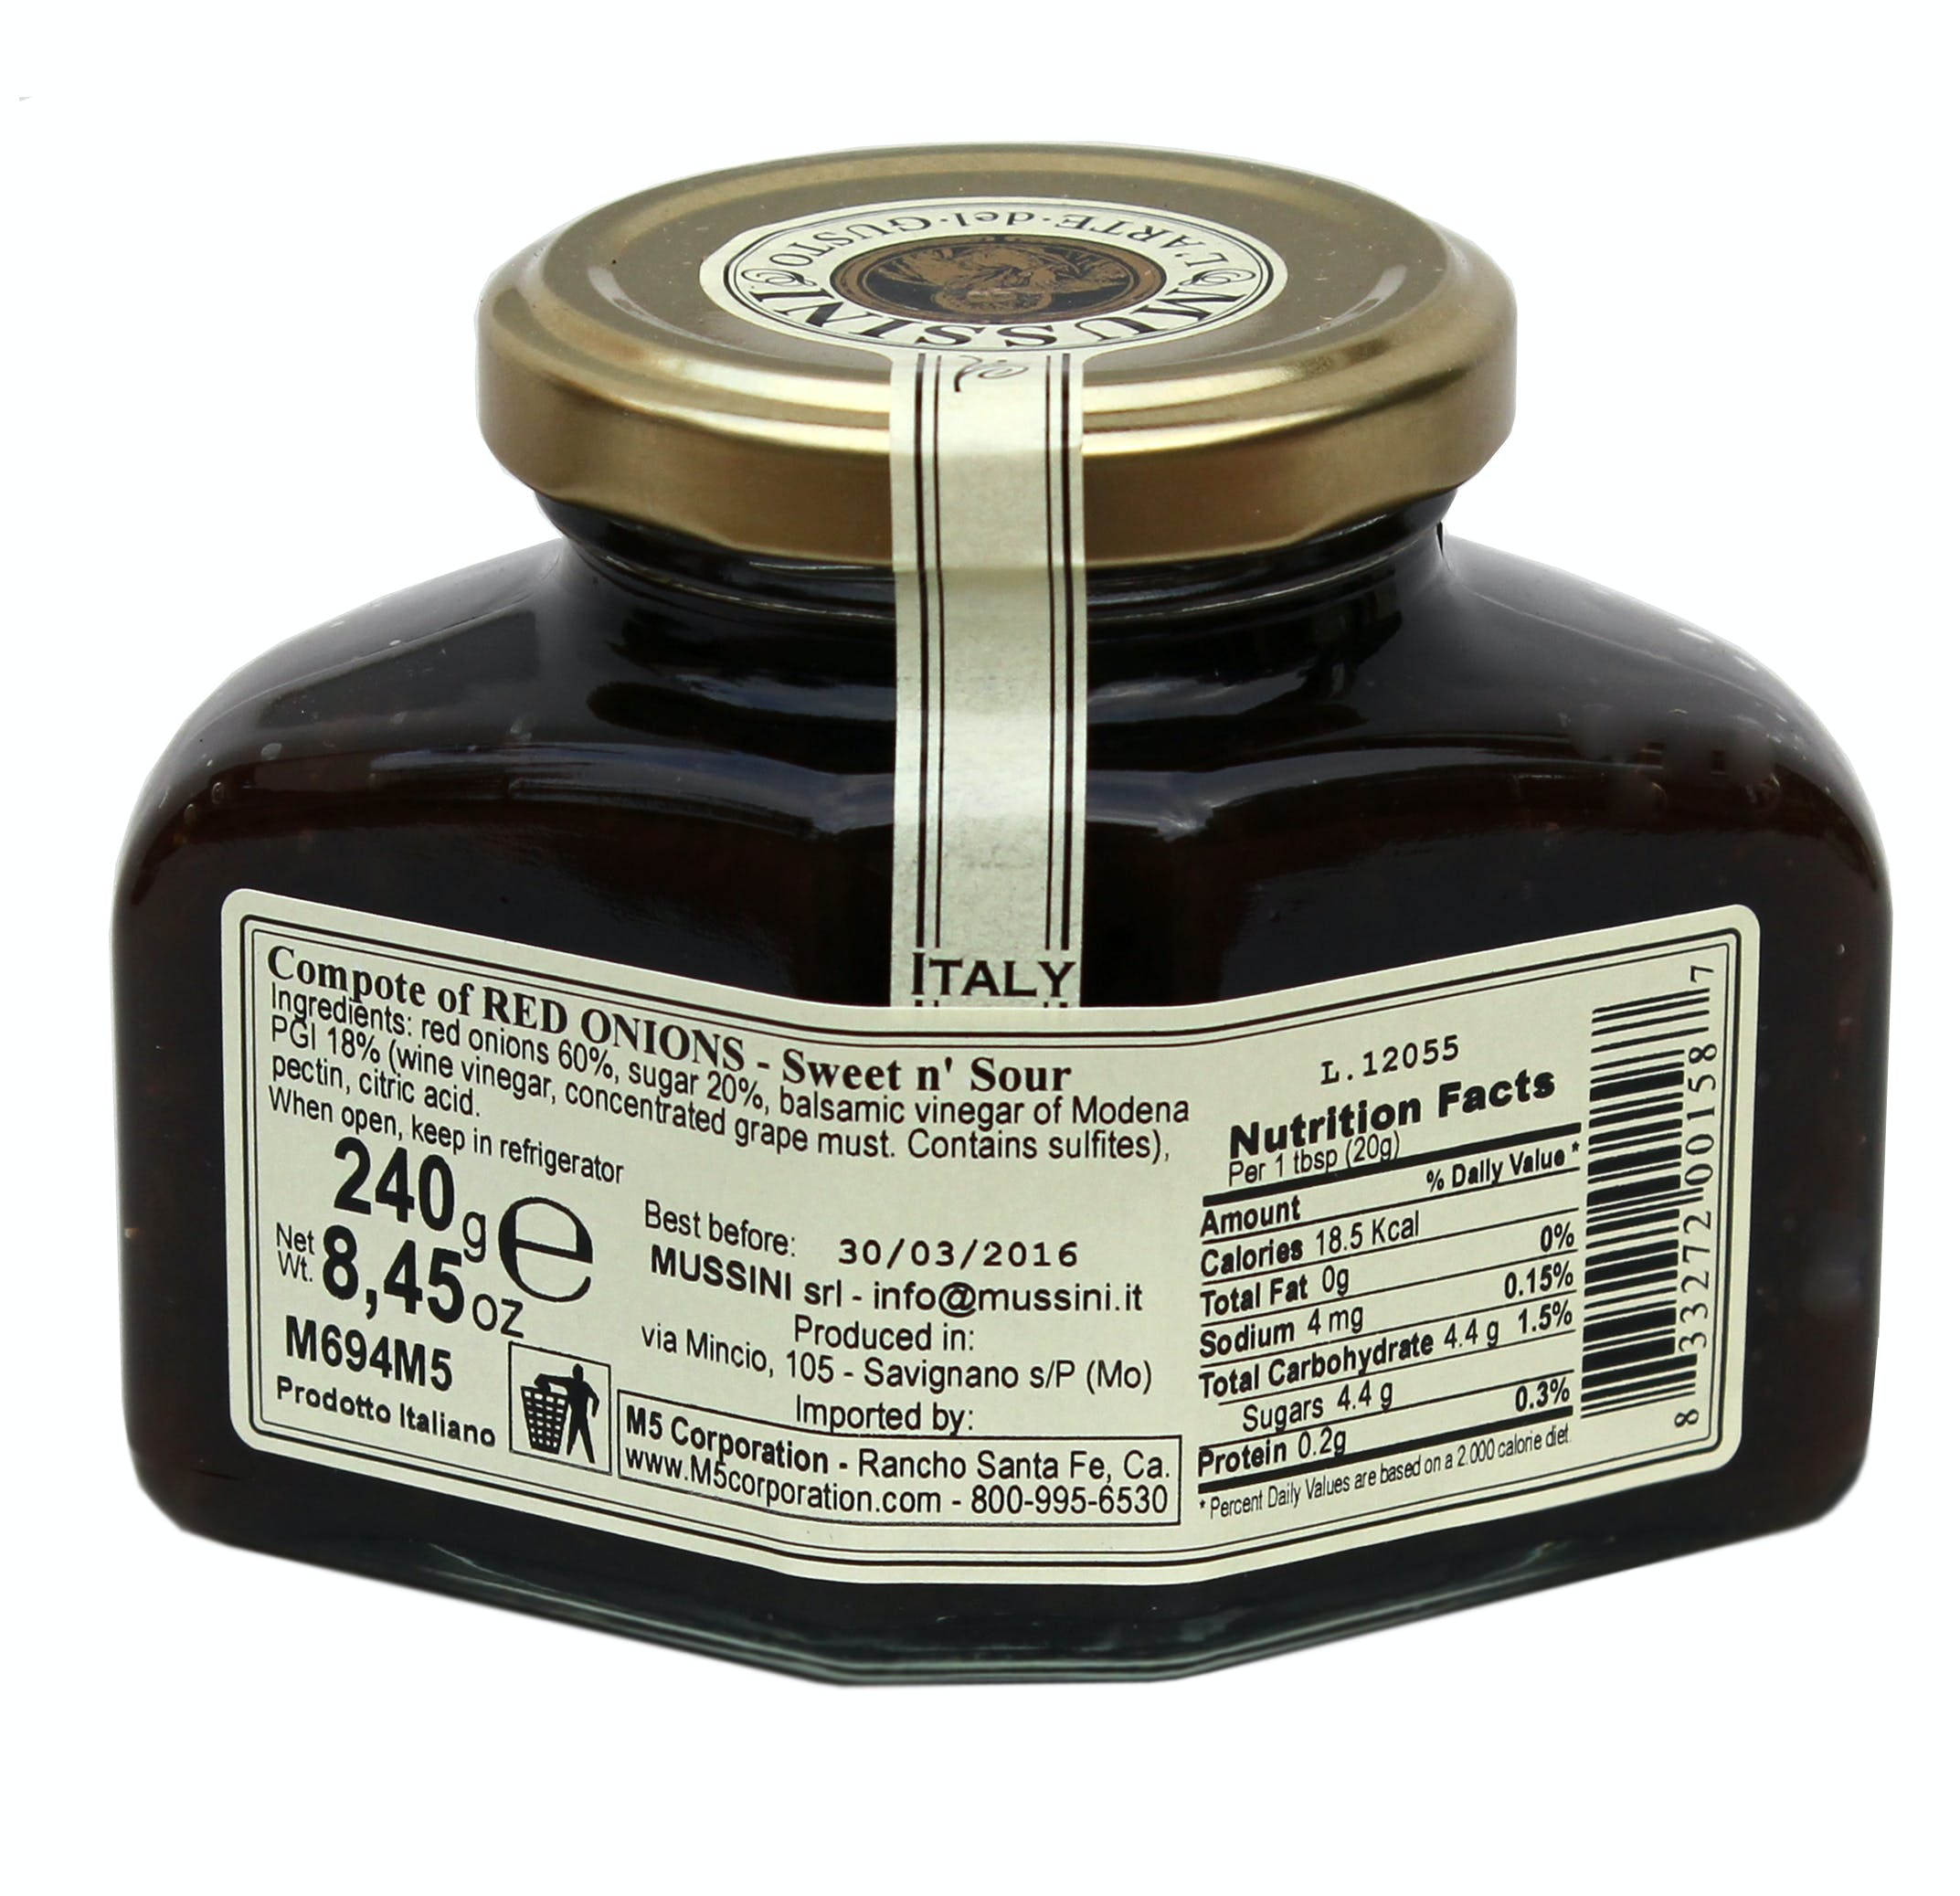 Red Onions and Balsamic Vinegar Compote - sold by M5 Corporation